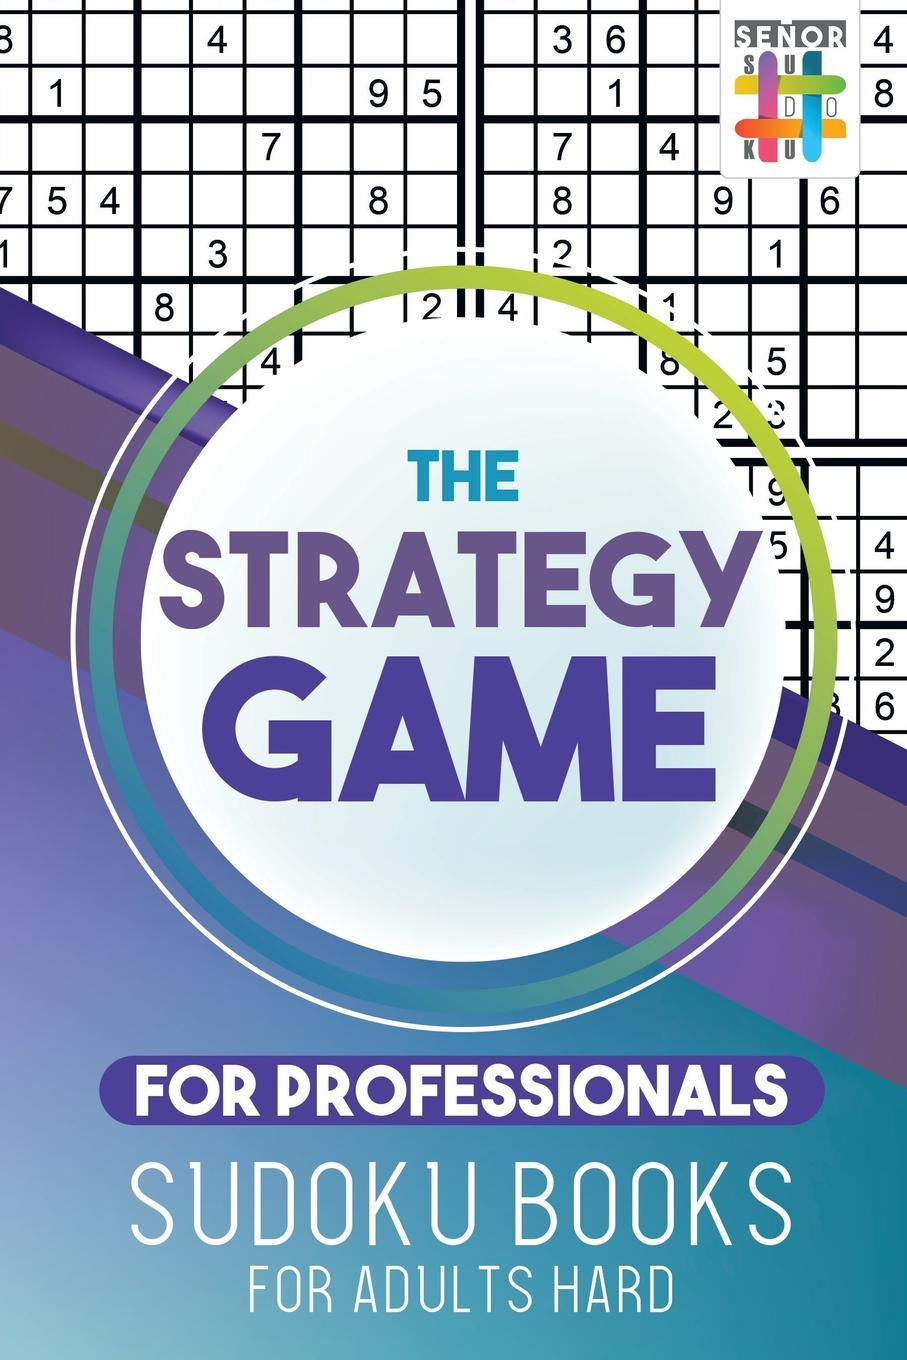 Senor Sudoku The Strategy Game for Professionals . Books Adults Hard